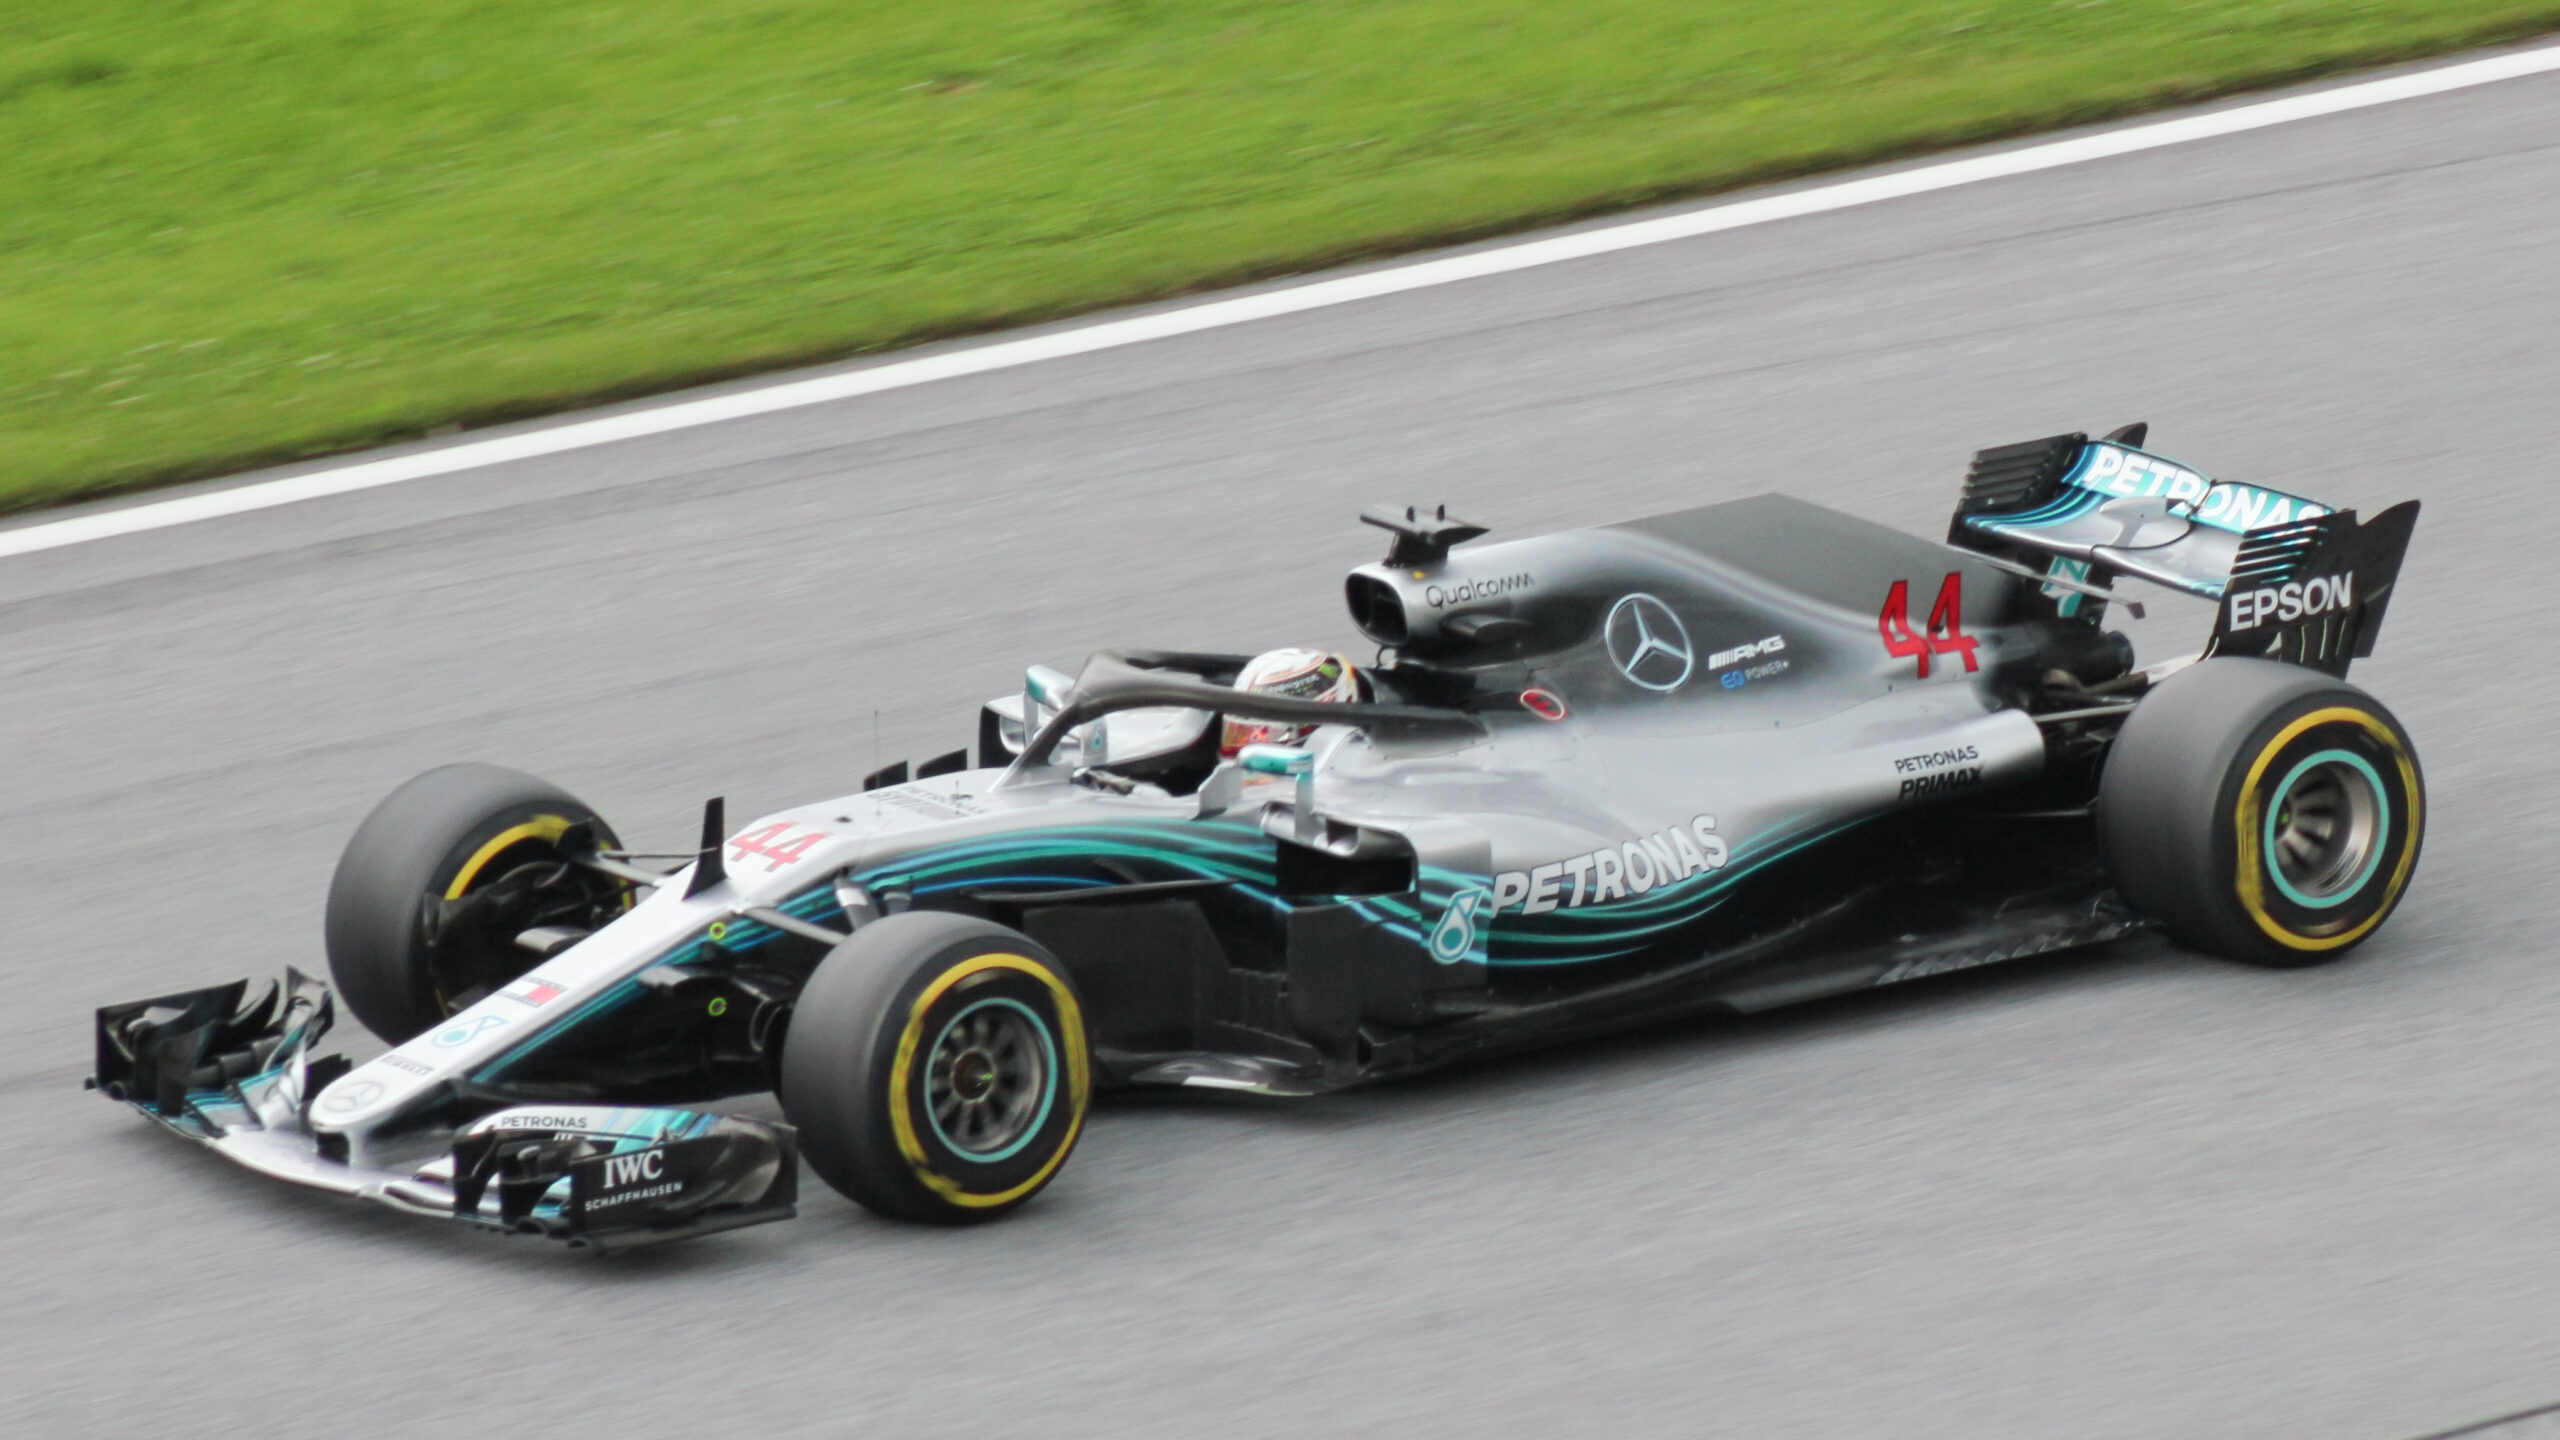 Mercedes Release New Black Livery for 2020 F1 Season ...